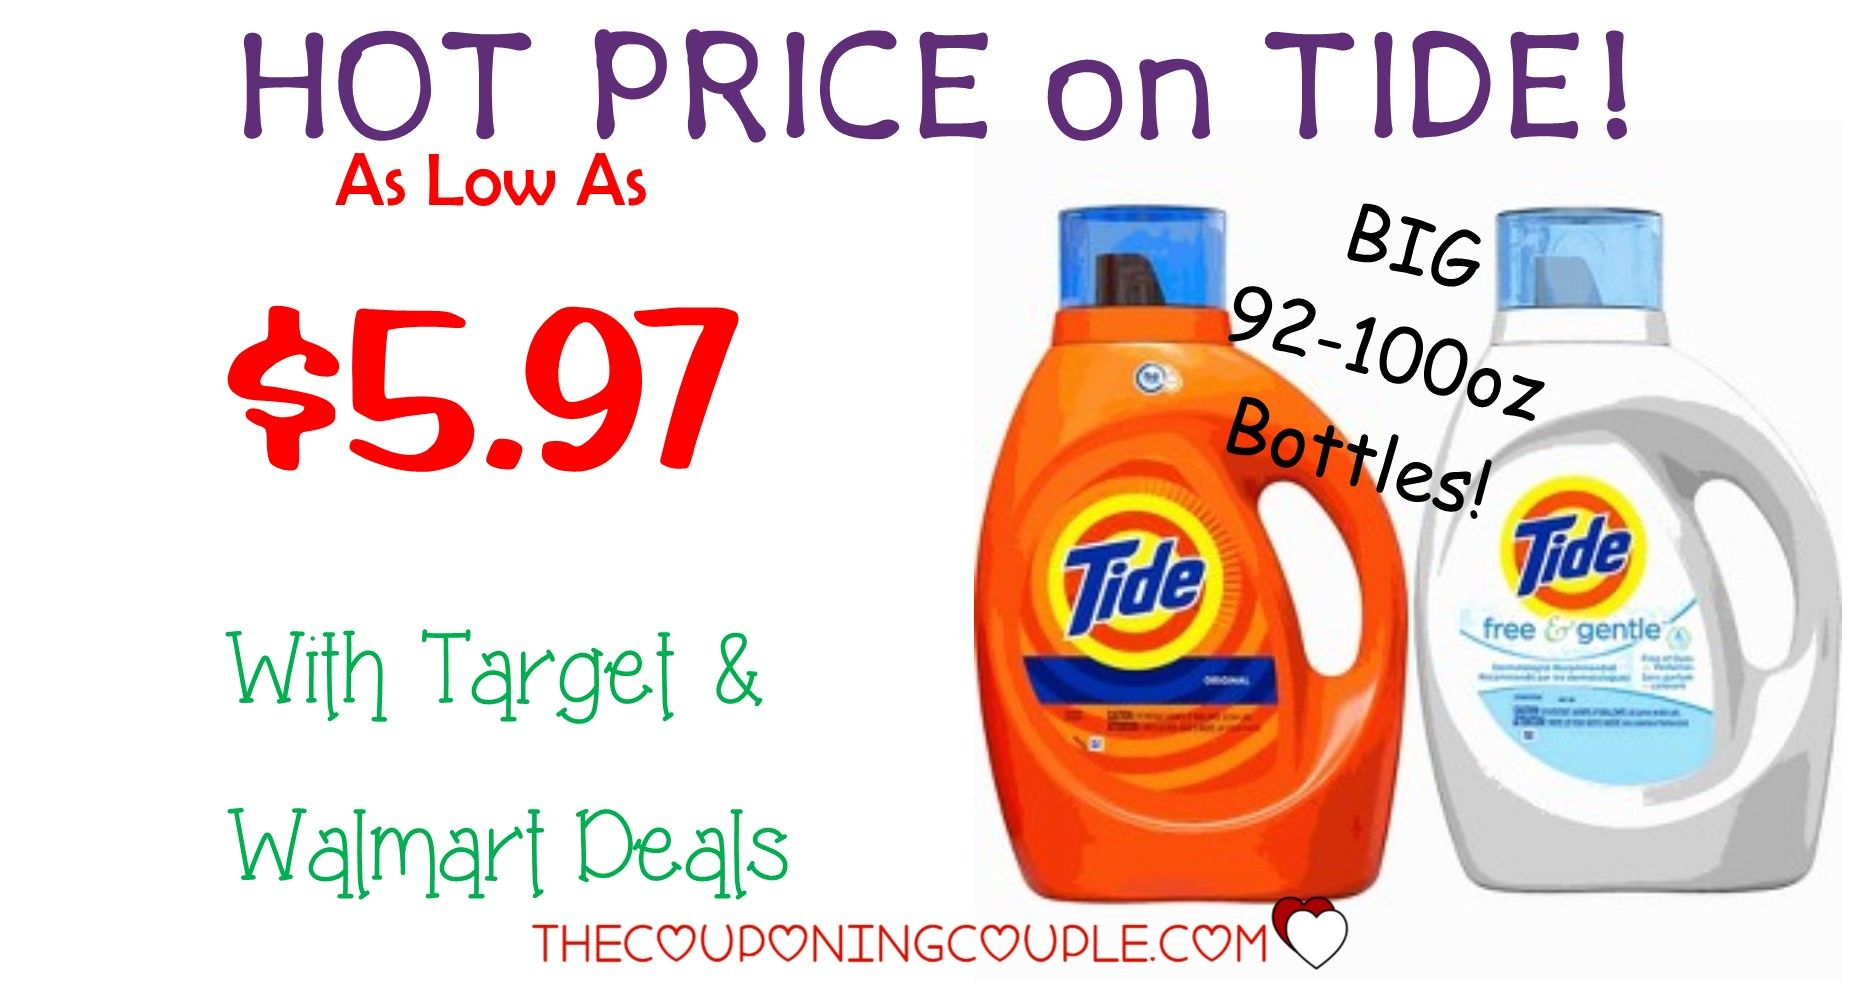 Tide Liquid Laundry Detergent As Low As 5 97 For Big Bottles At Walmart And Target Laundry Liquid Liquid Laundry Detergent Liquid Tide